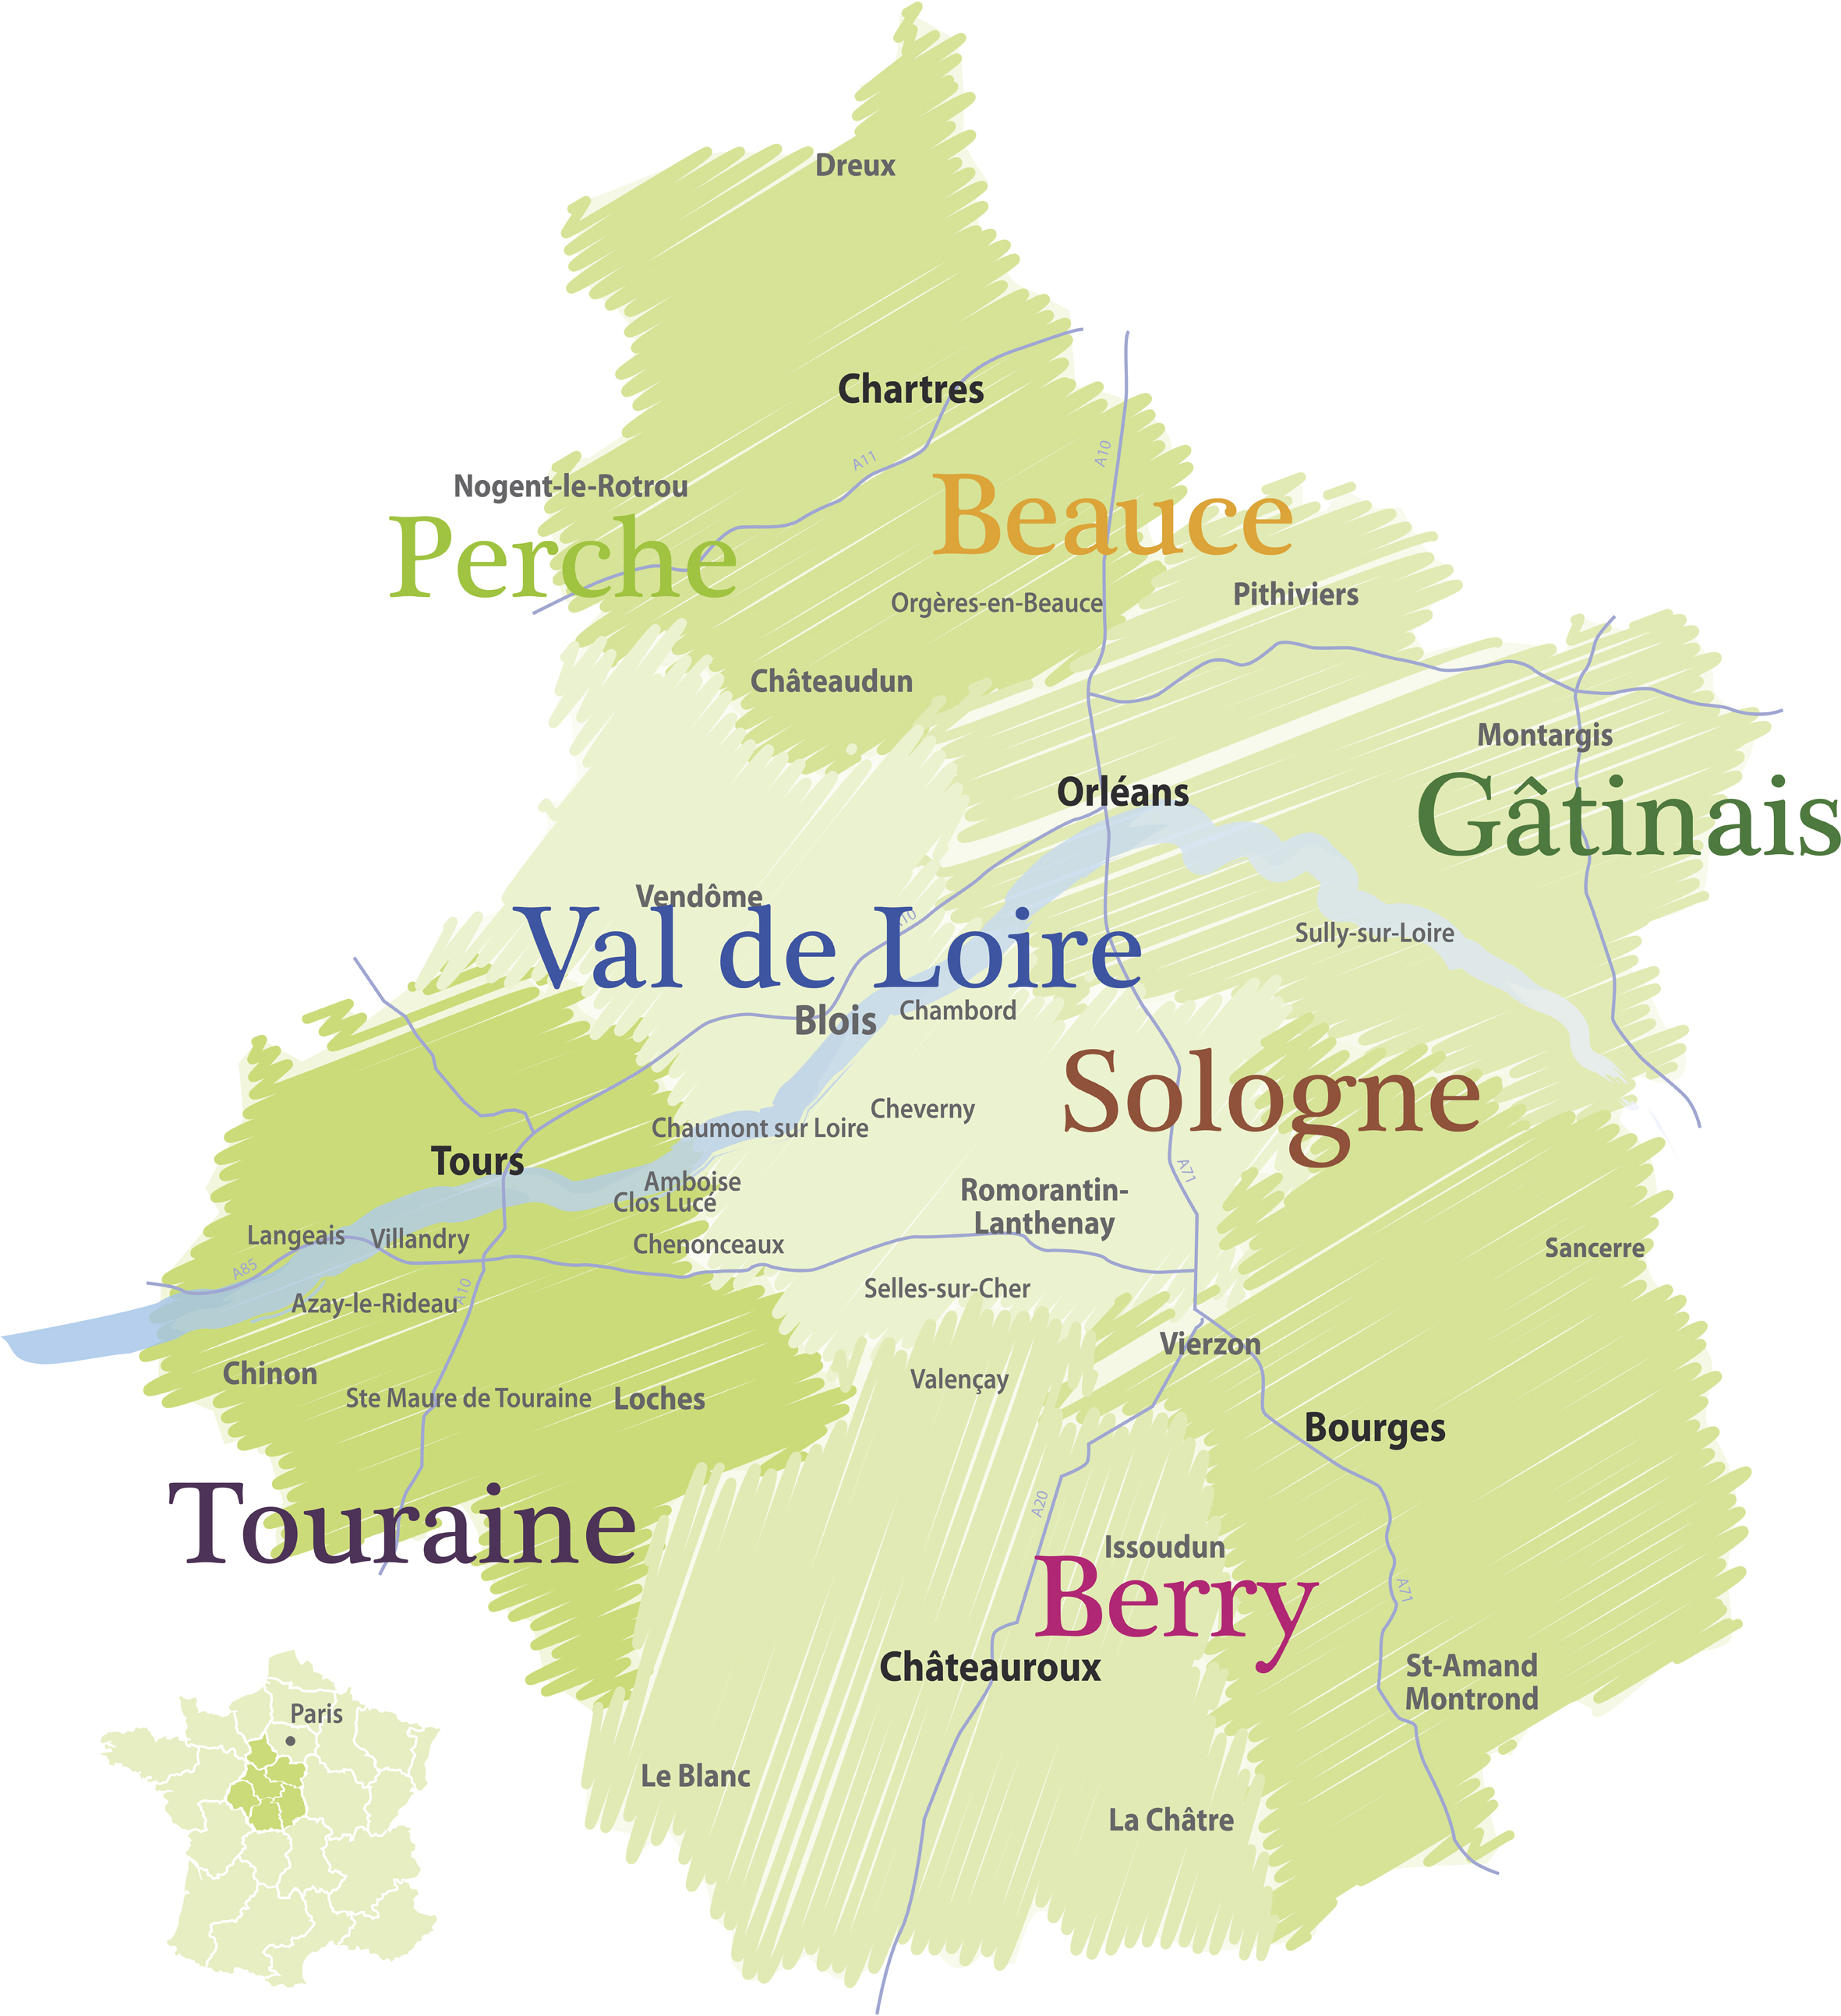 How to get to the Loire Valley